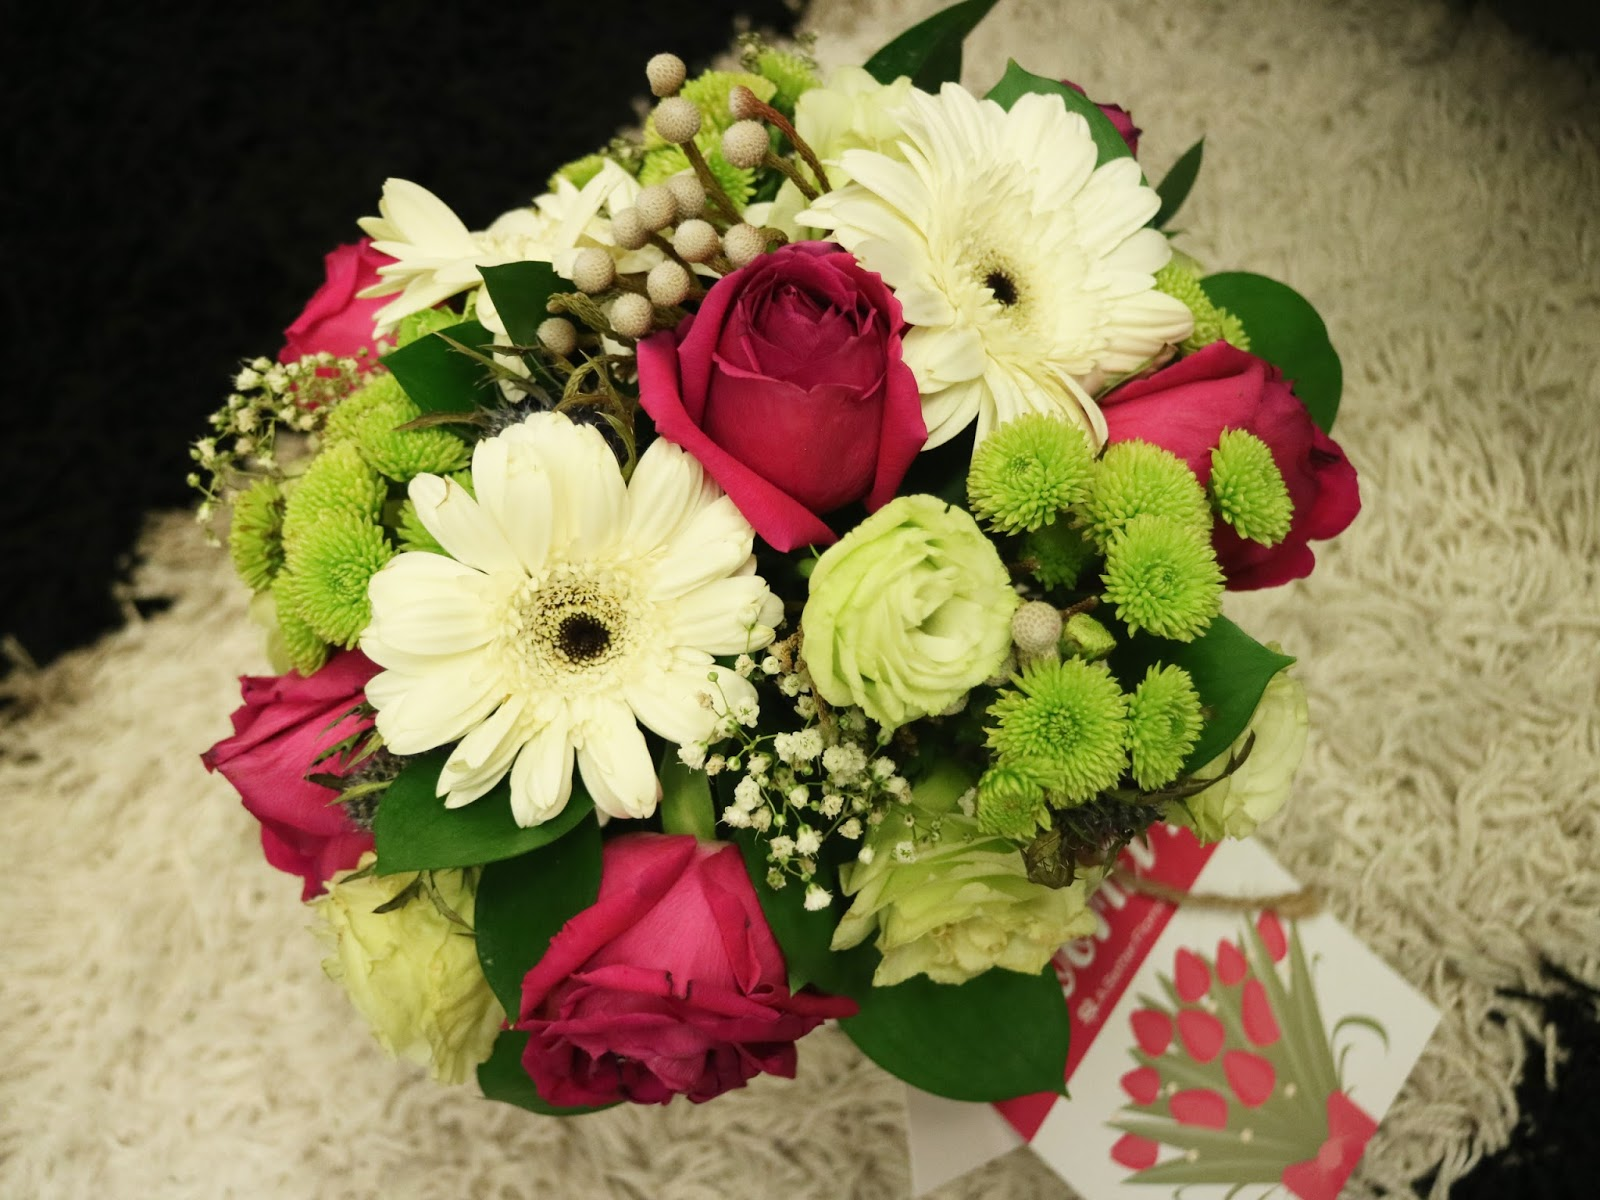 Mons diary singapore food and lifestyle blog a better florist i love the happy and cherry vibe from the white daises combined together with elegance from the hot pink roses its not a typical romantic bouquet of roses izmirmasajfo Choice Image